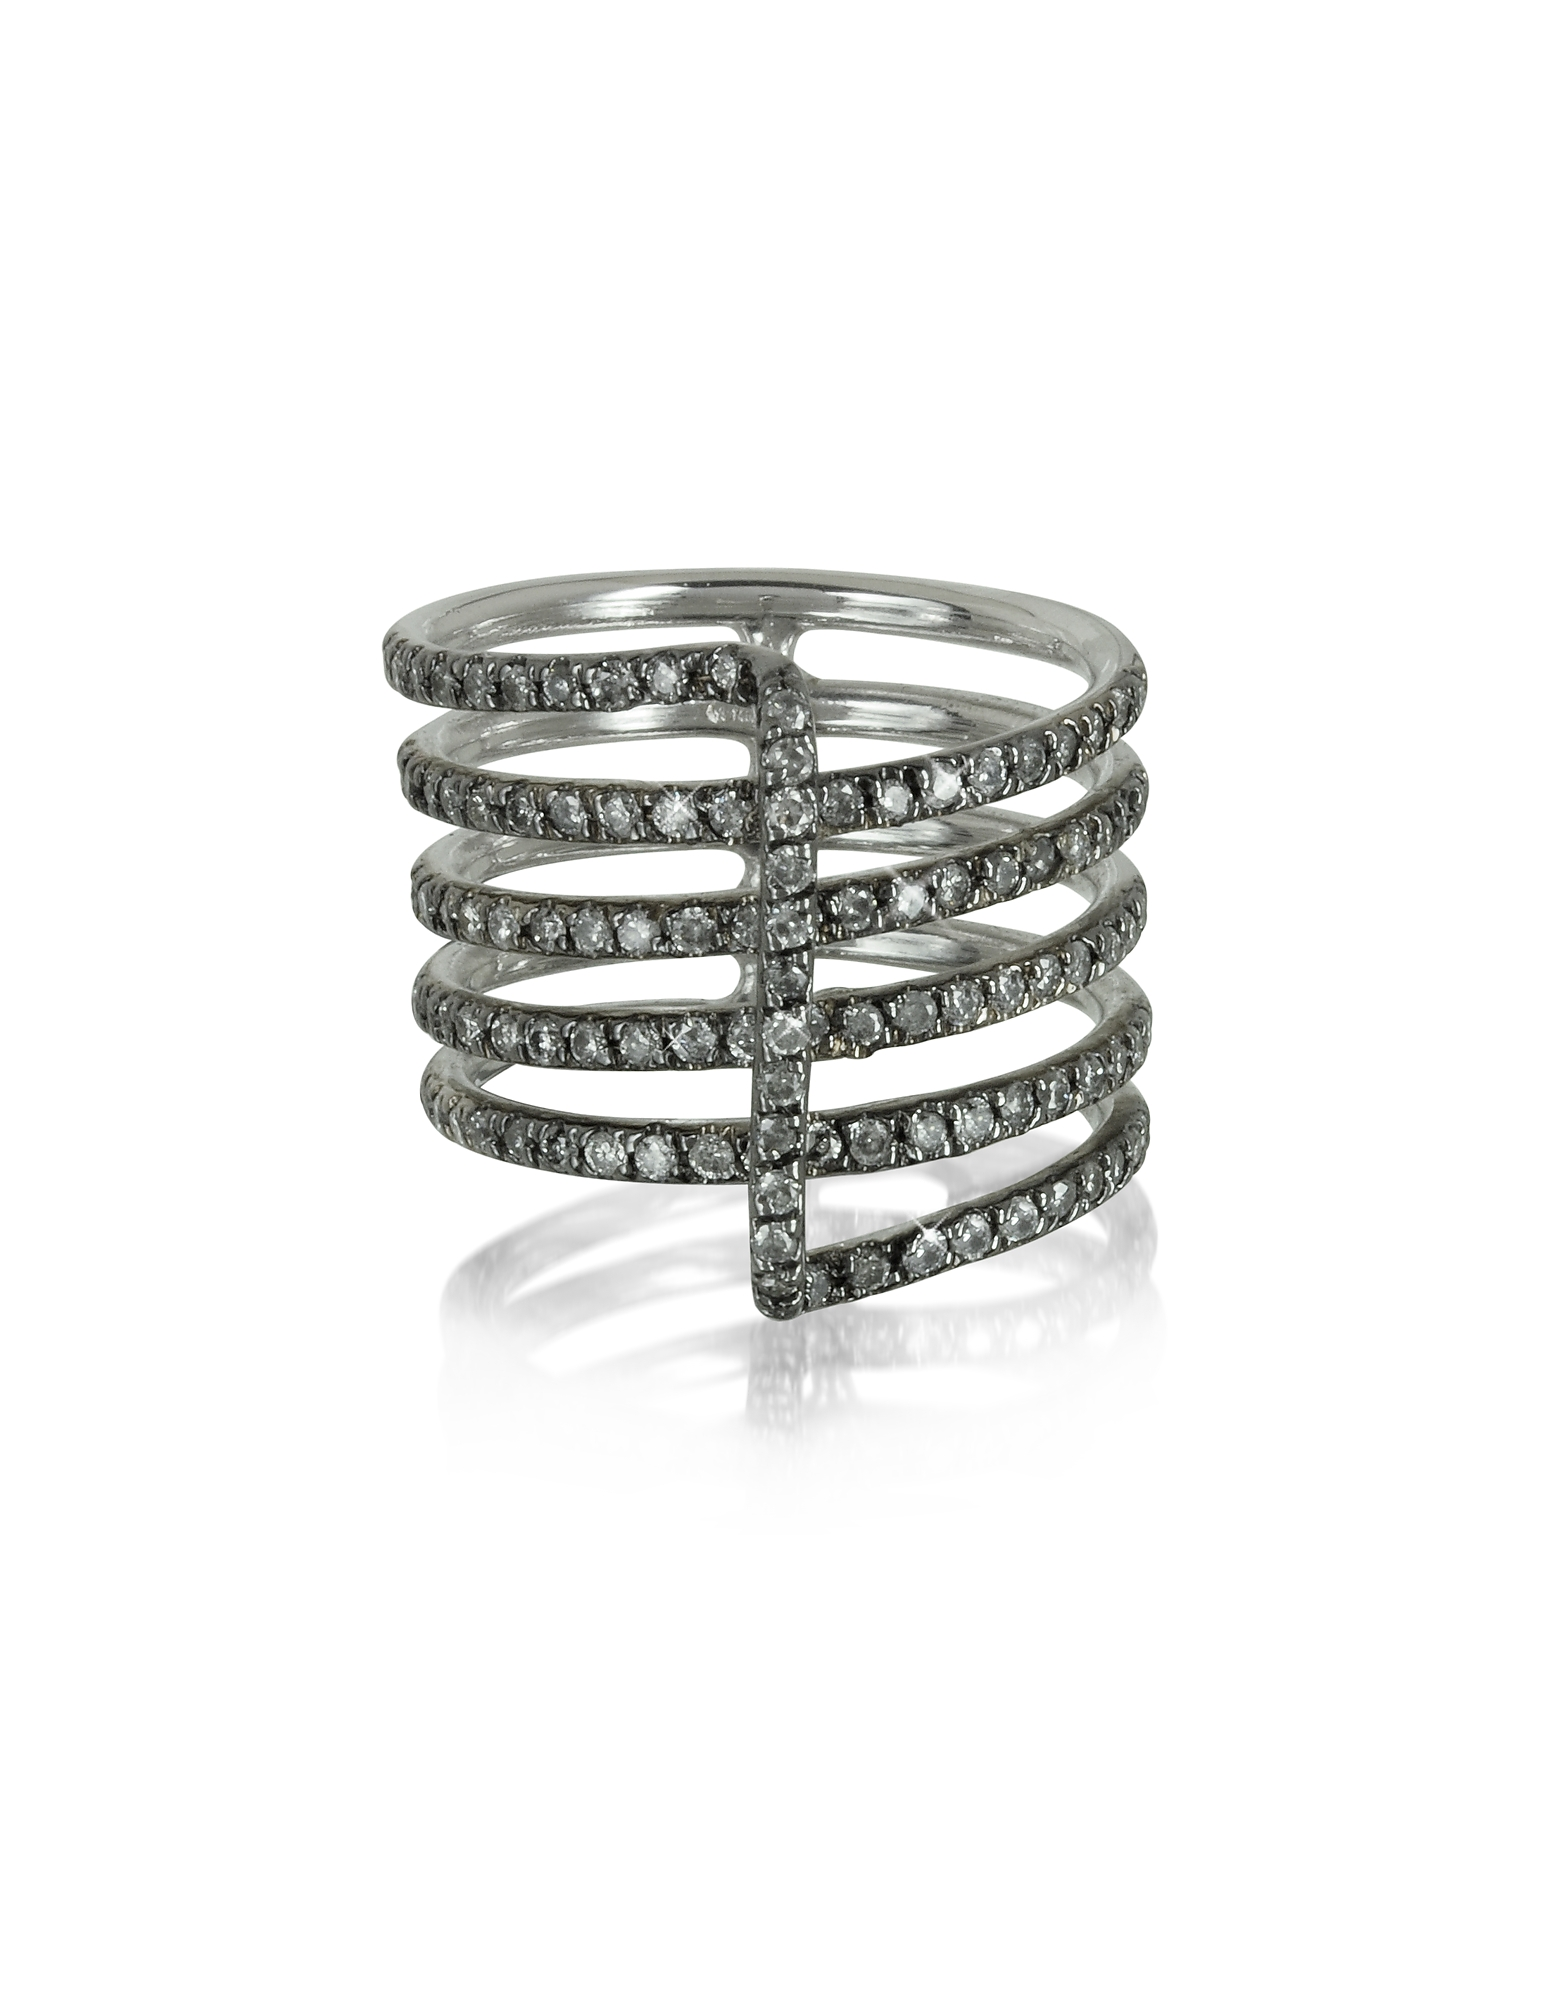 Bernard Delettrez Rings, Four Bands 9K White Gold Ring w/Grey Diamonds Pave